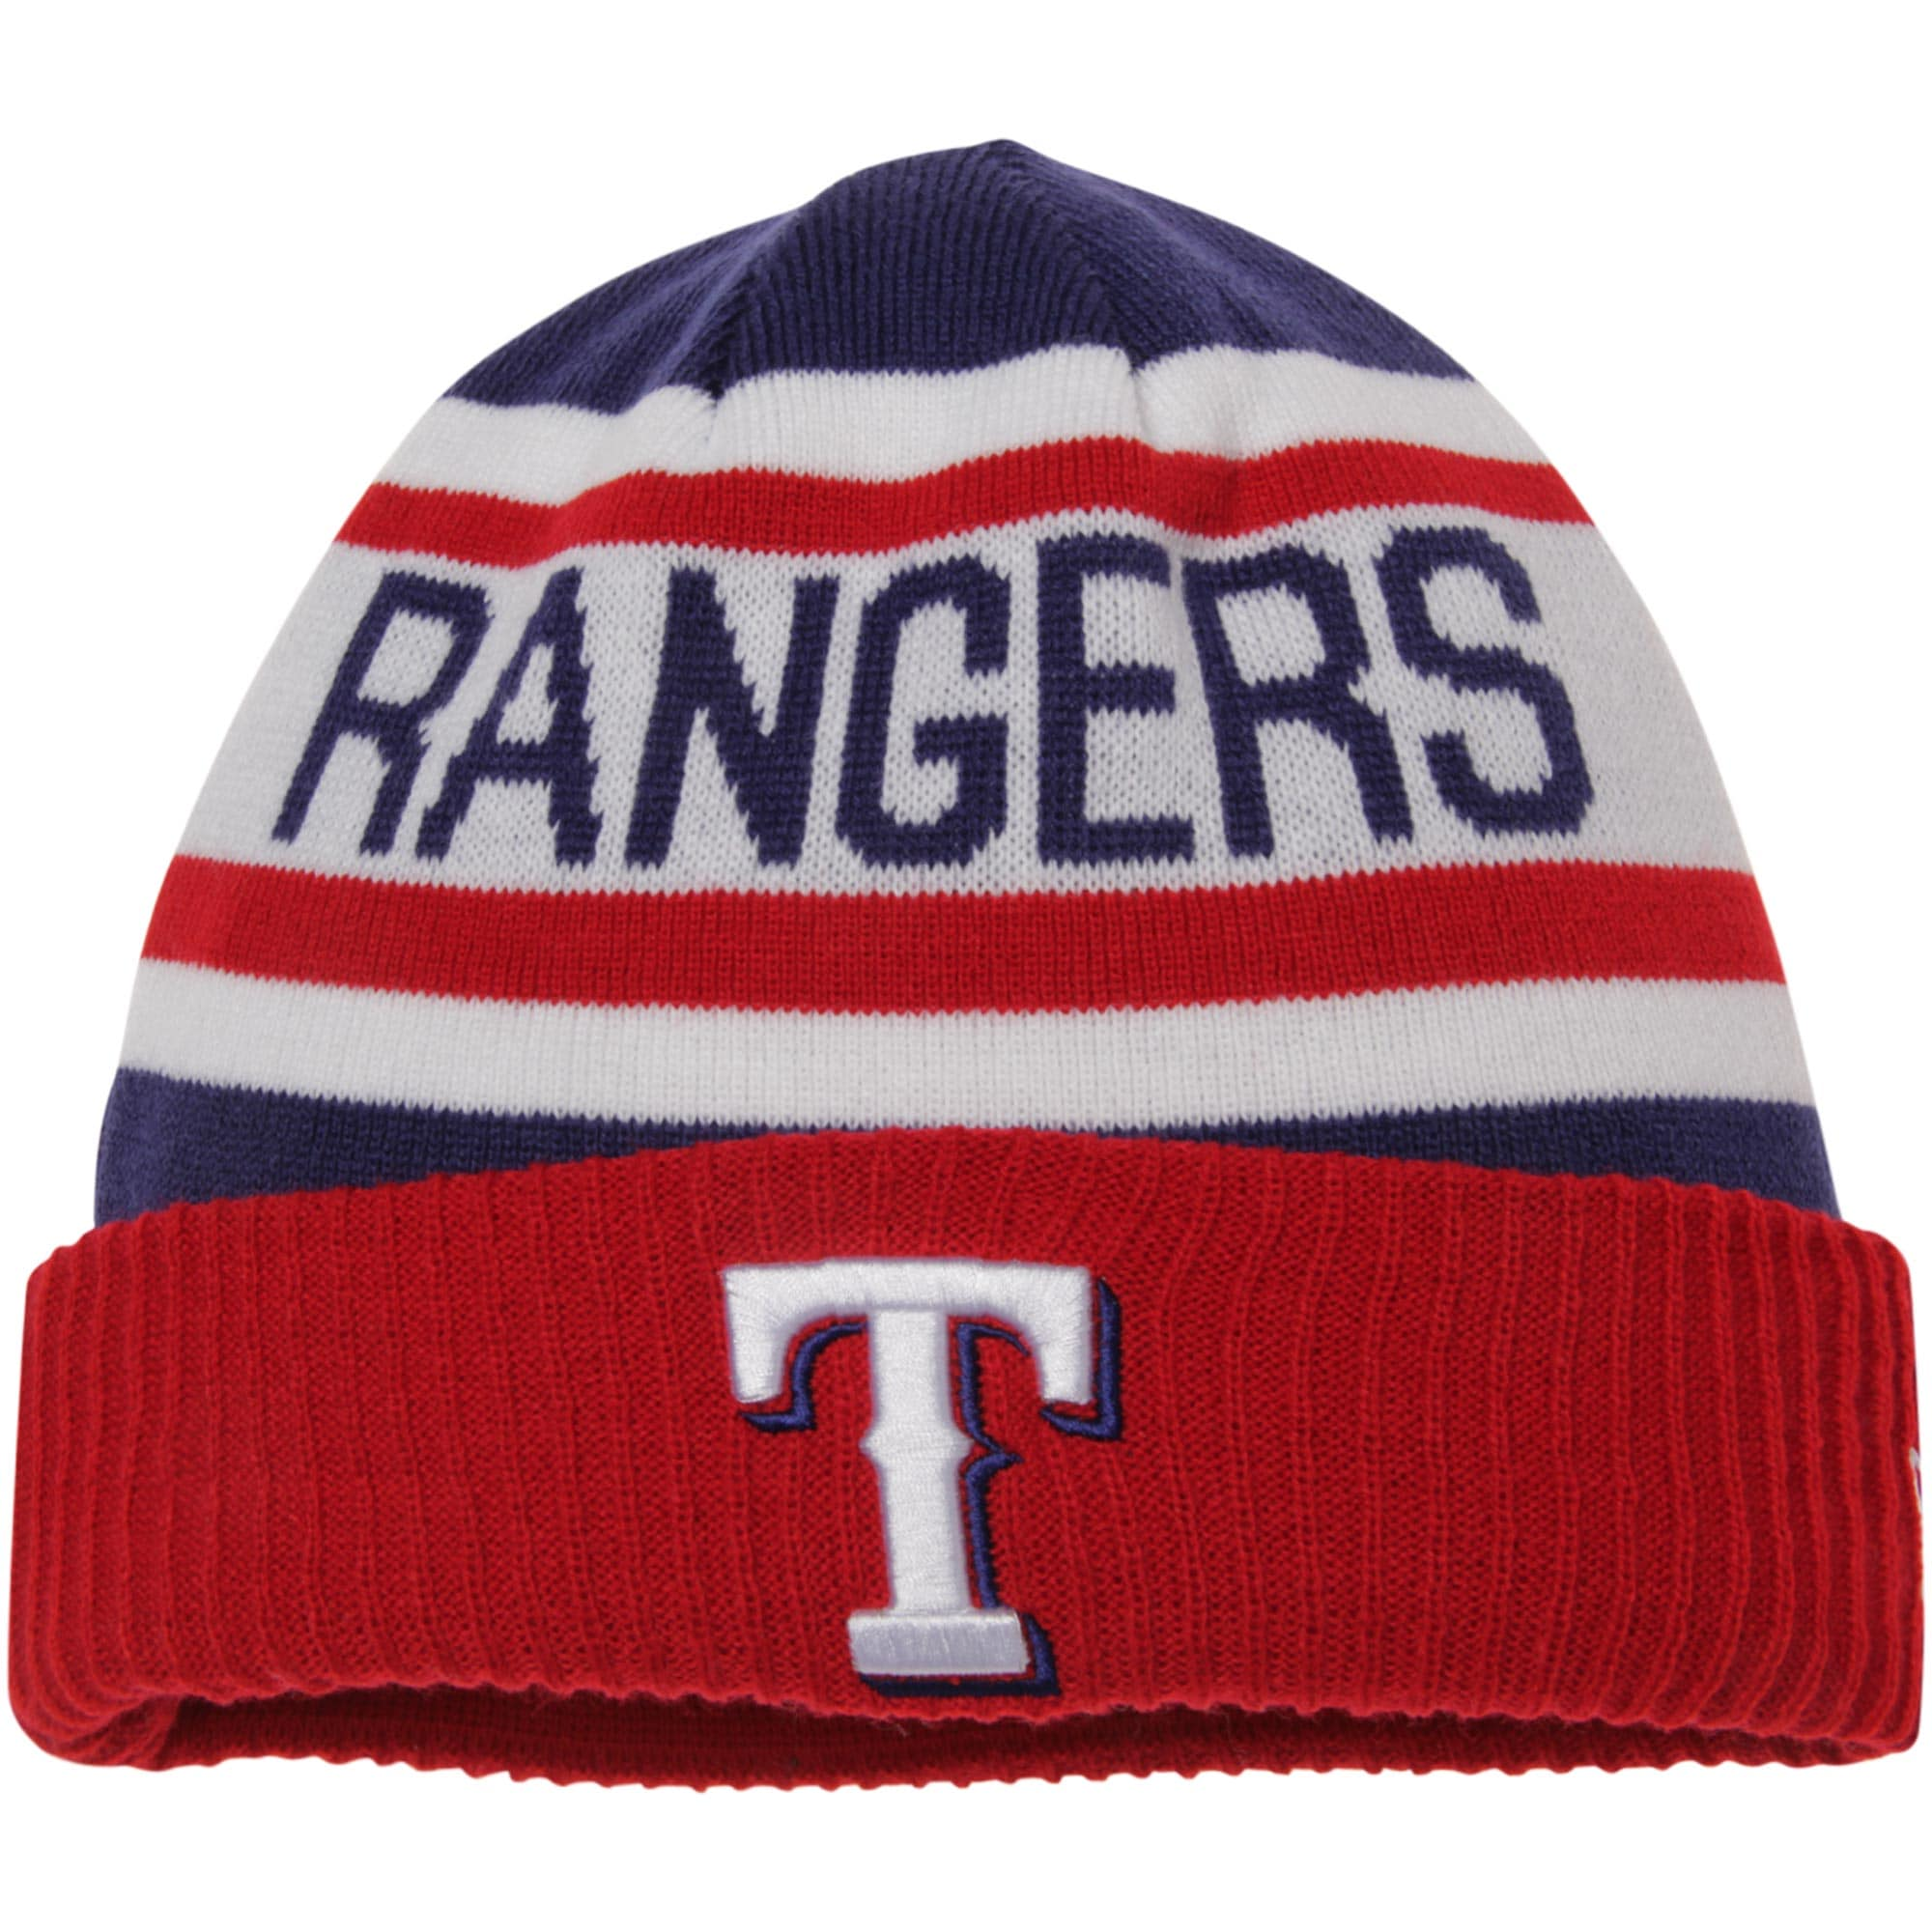 Texas Rangers New Era Biggest Fan 2.0 Cuffed Knit Hat - White/Red